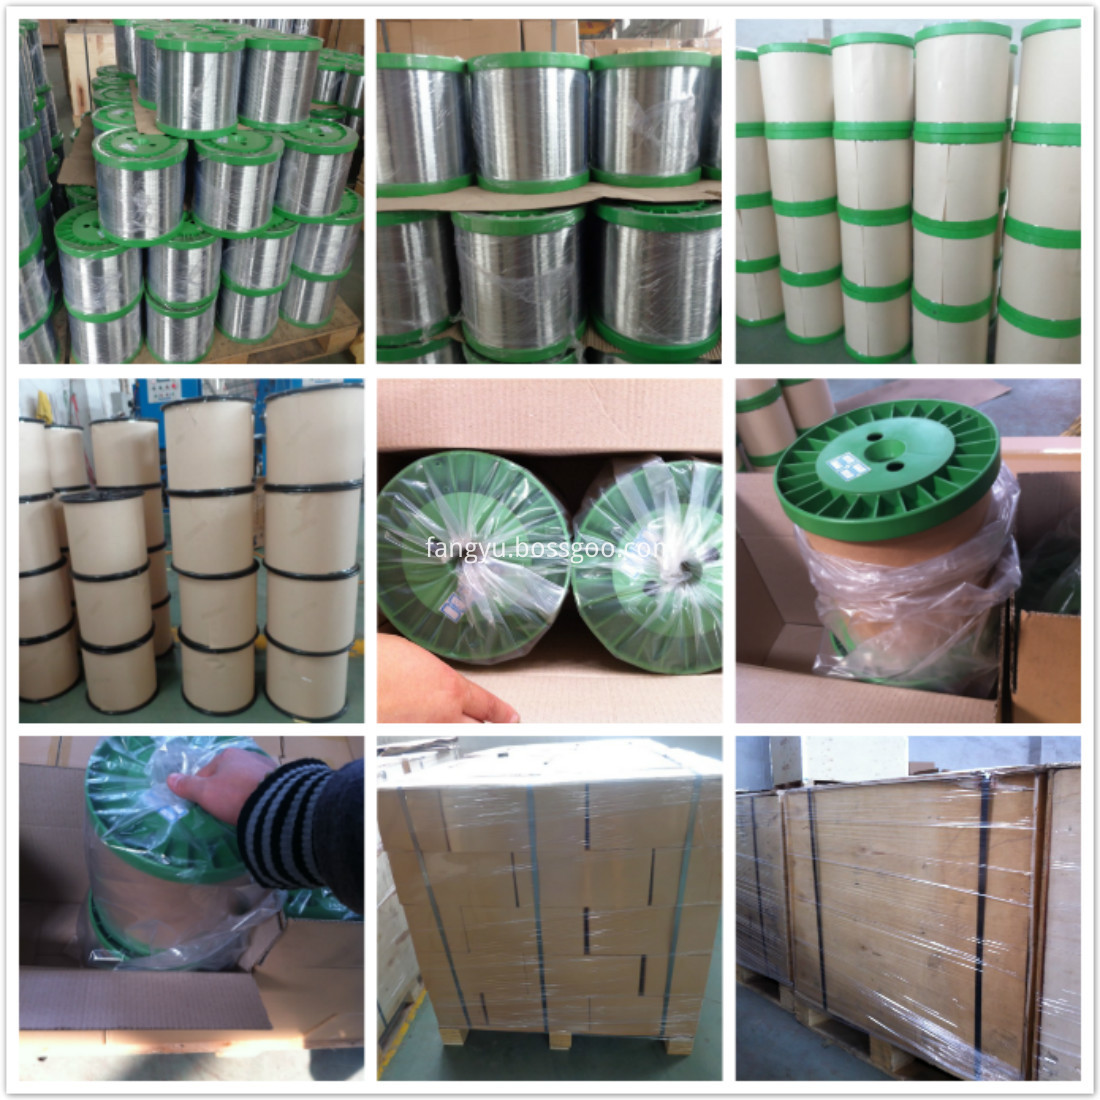 packing of stainless steel wire